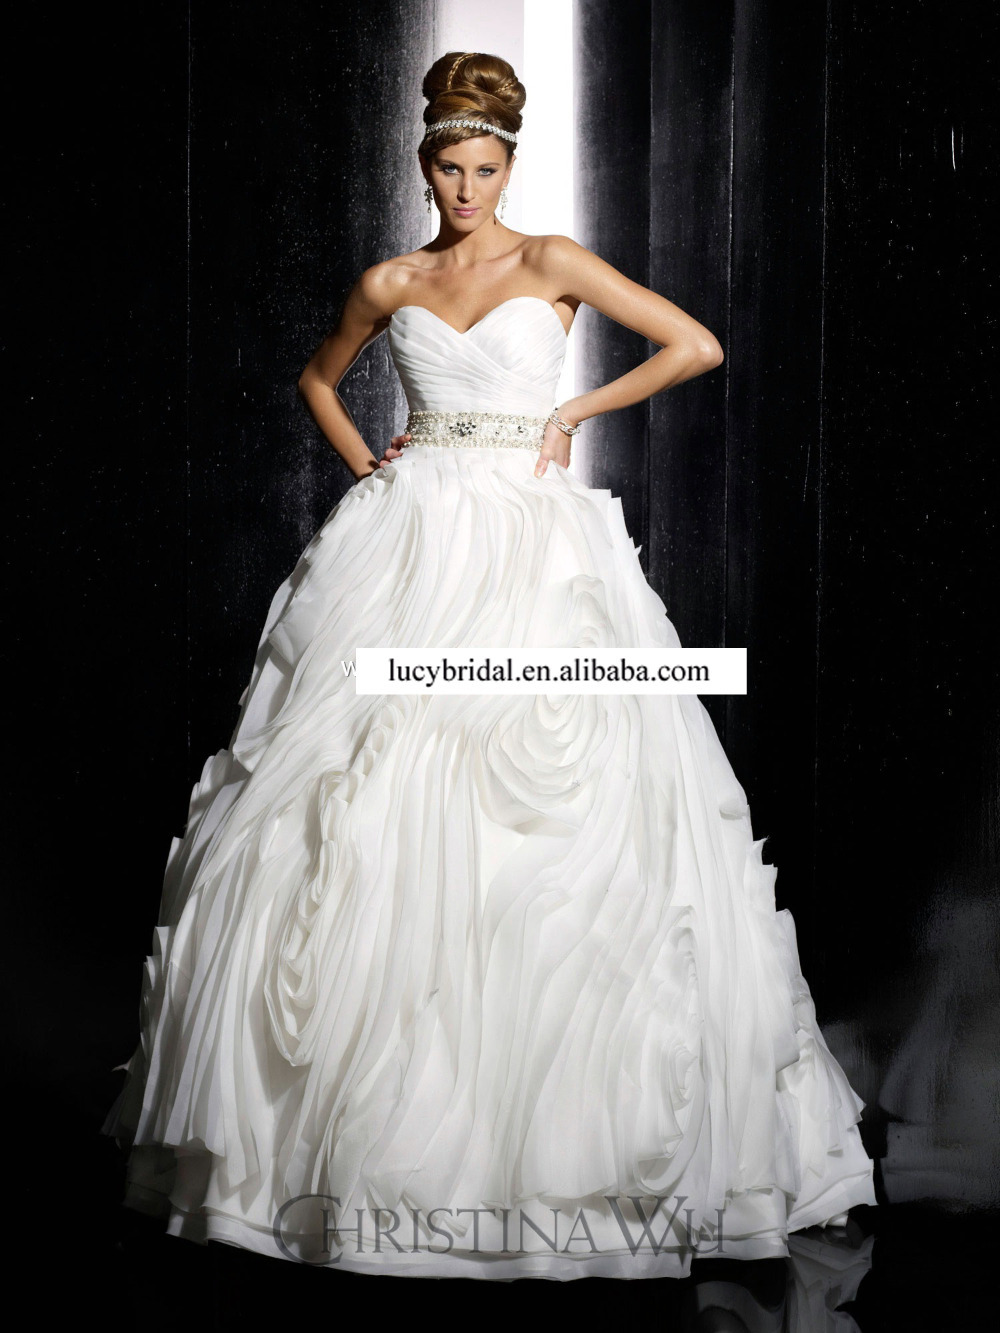 Aliexpress Buy Fashion Diamond Waisted Big Ruffled Organza Ball Gown Wedding Dresses